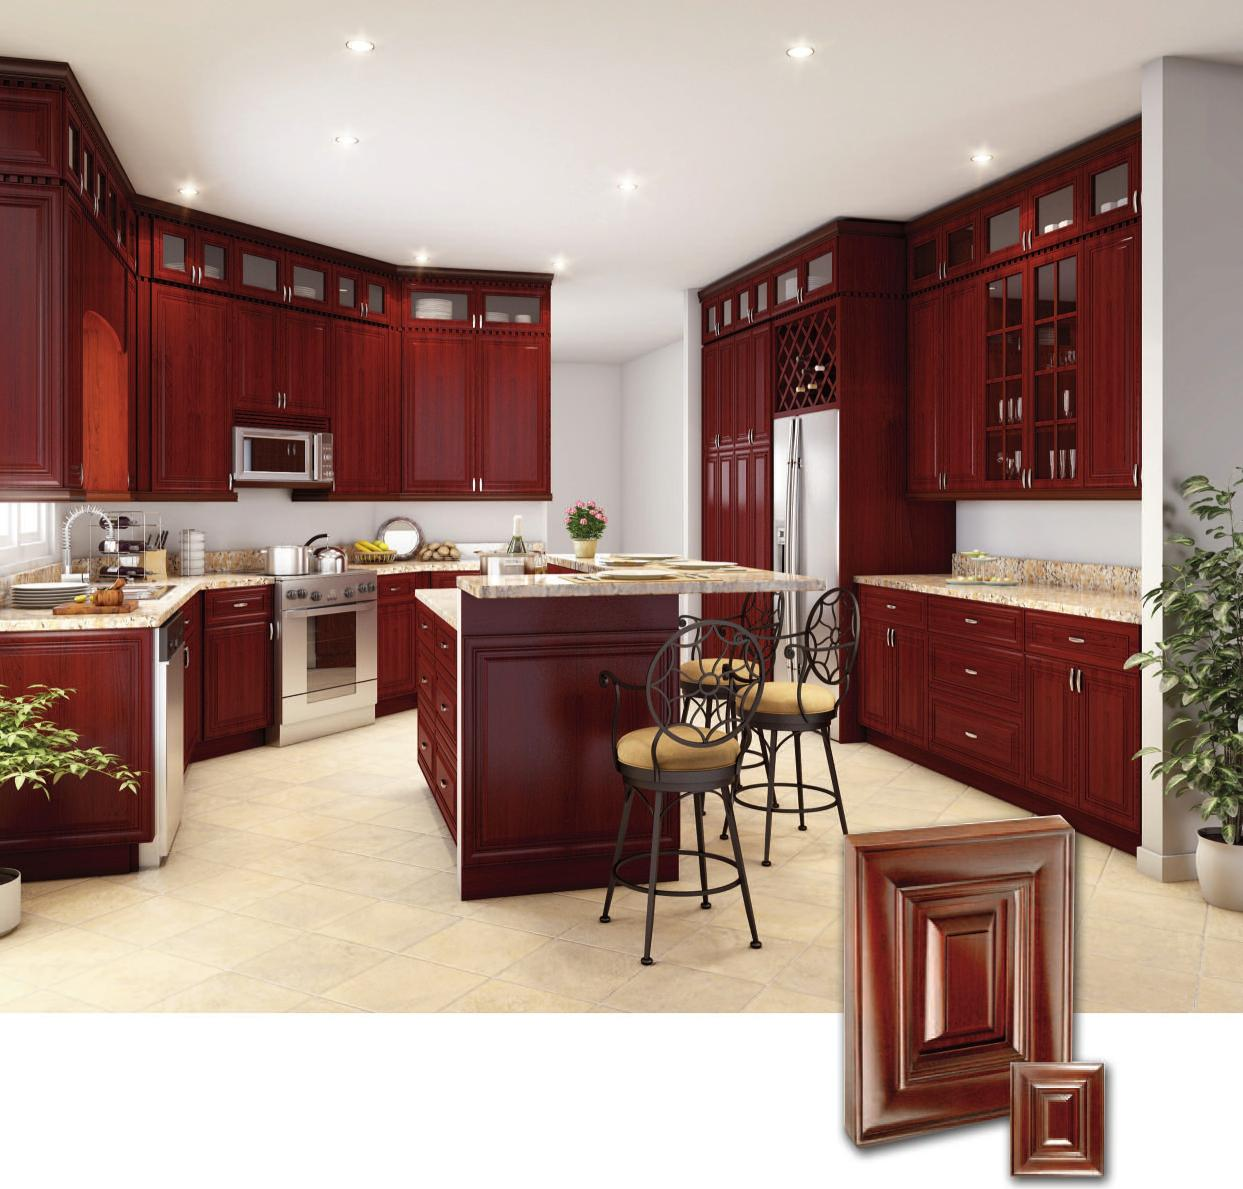 Cherry Shaker Kitchen Cabinets Use Arrow Keys To View More Kitchens Swipe Photo To View More